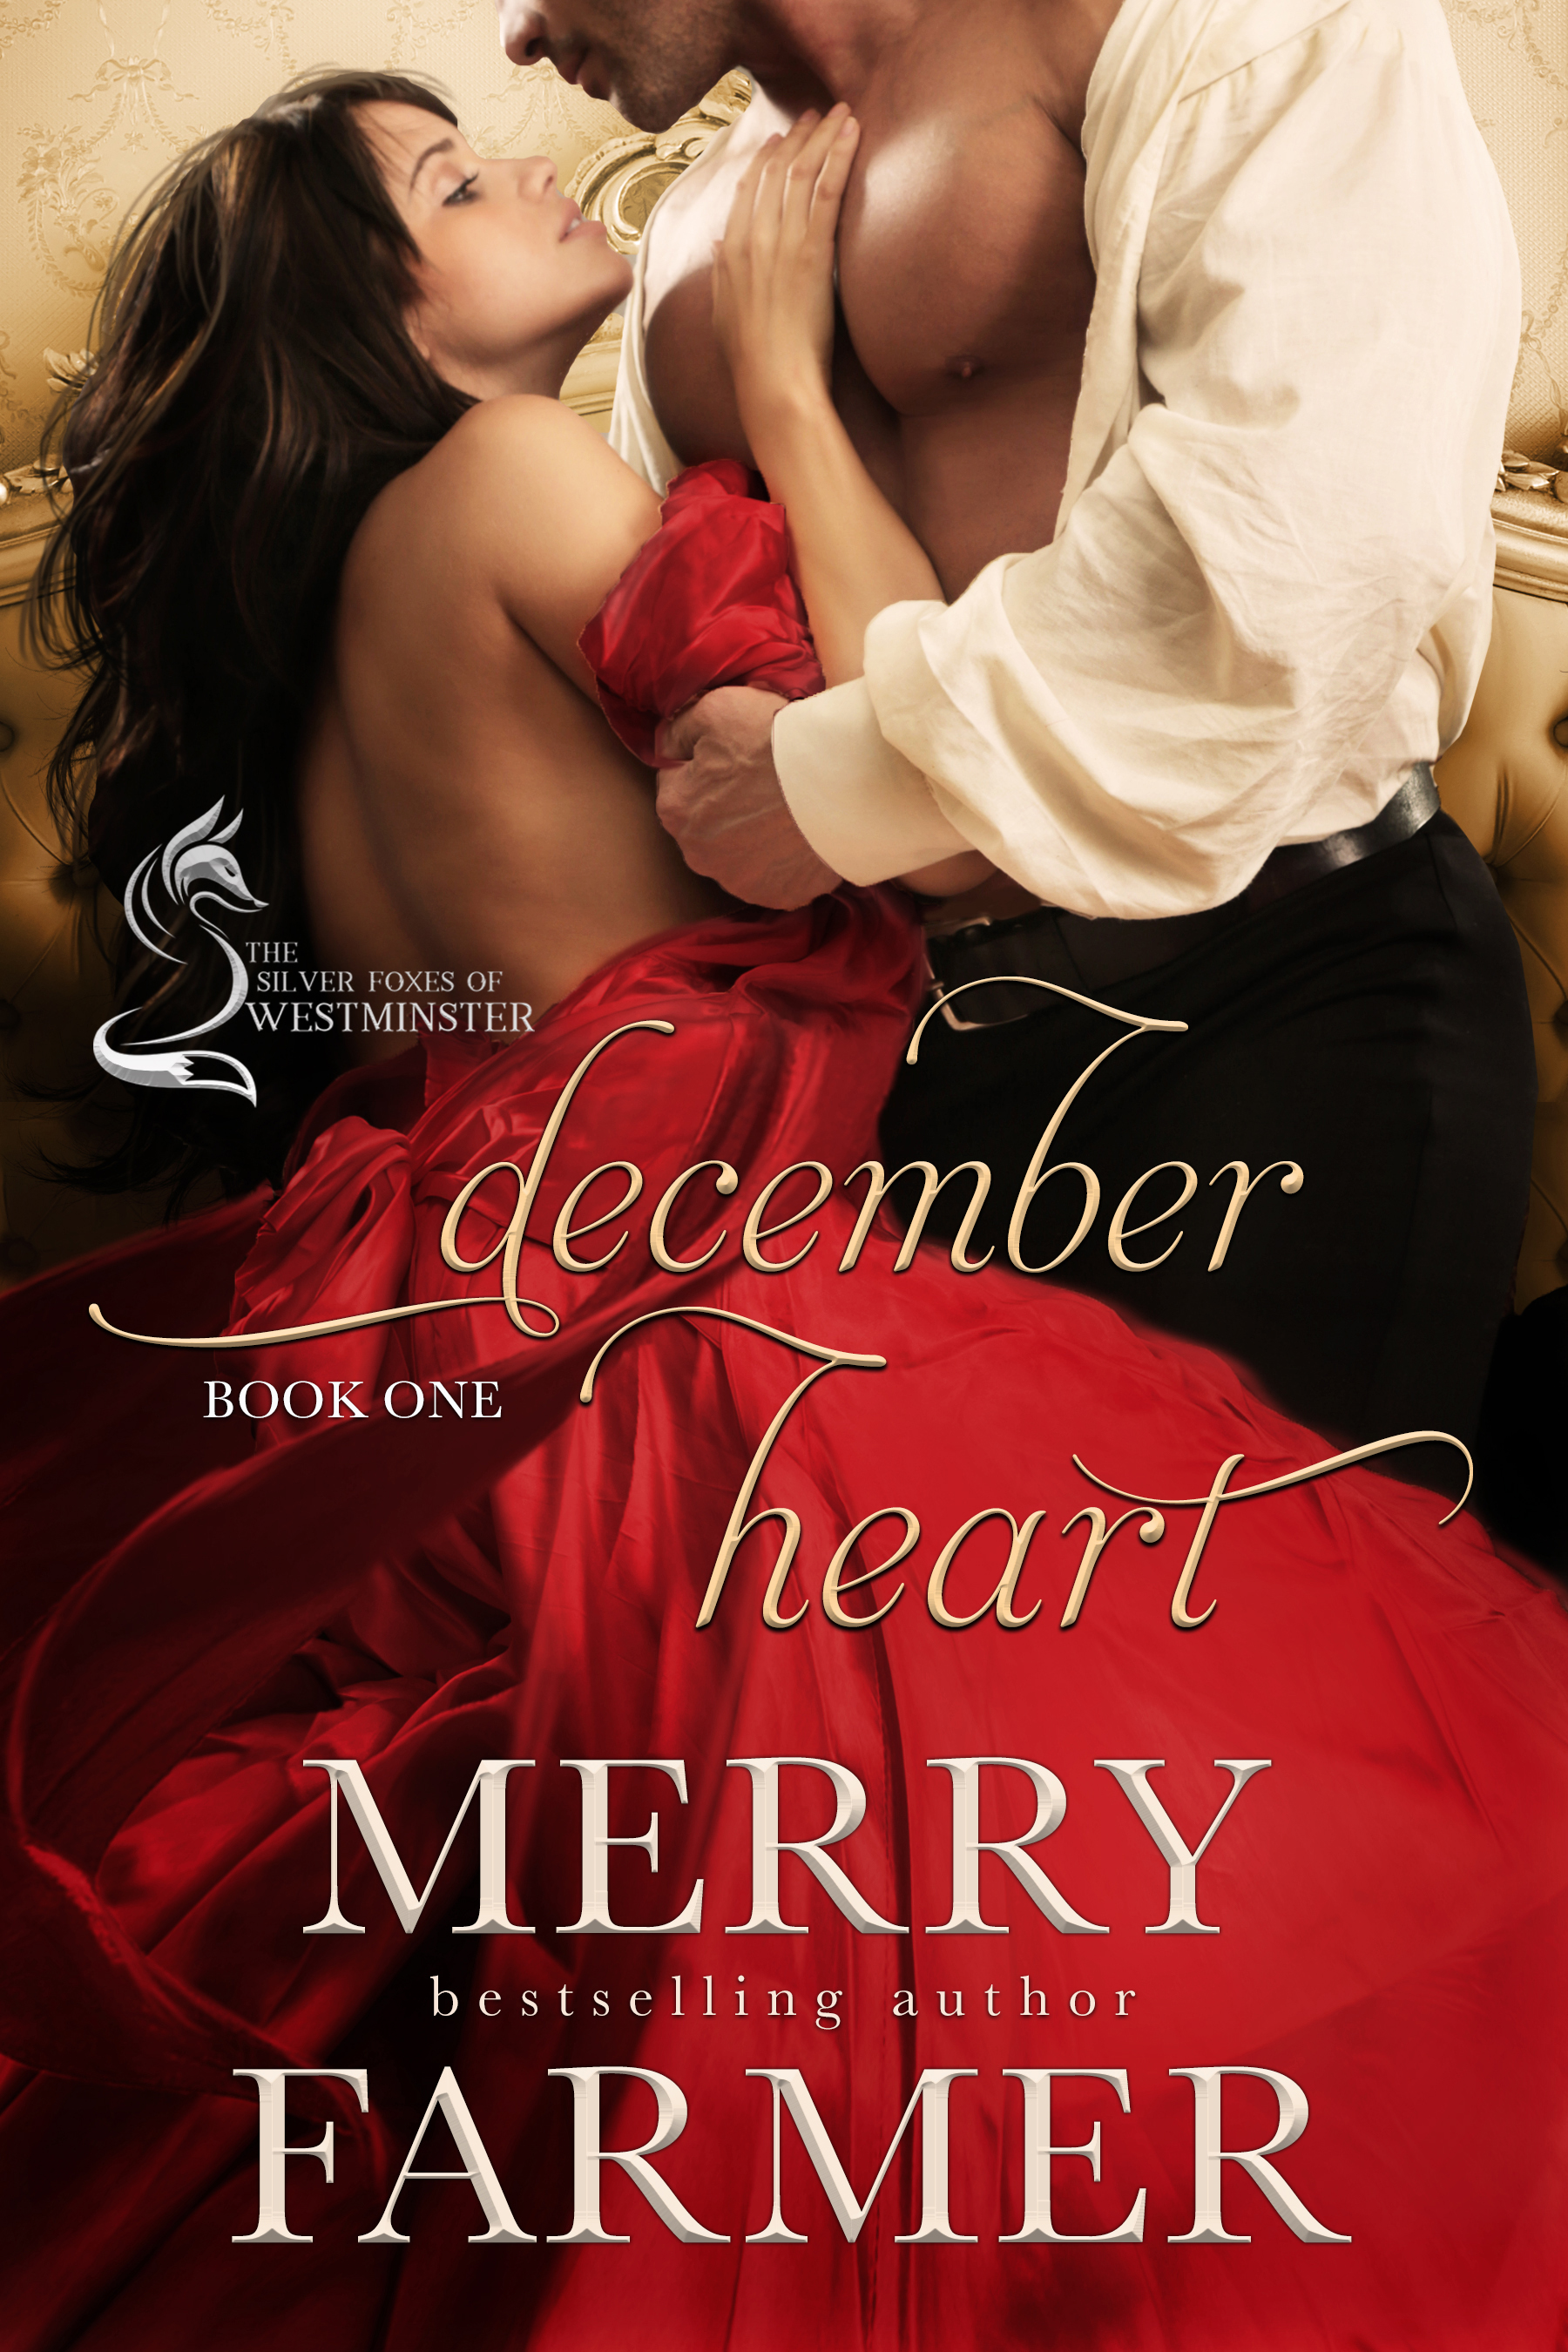 December Heart (Book One) - At twenty-seven years old, Mariah Travers has become what she most feared—a spinster and a perpetual adolescent in the eyes of her family and the law. But her fortunes change when her father announces that he has promised her hand in marriage to an old friend and colleague in the House of Lords. Lord Peter deVere, Earl of Dunsford, is not at all who Mariah imagined marrying, but she is willing to take a chance on the older man in order to gain the freedom that only married women are allowed.After a tragic marriage that stretched on for two decades, Peter is hesitant to marry again. But he needs an heir, or else his dastardly nephew, Lord William, will inherit everything he's worked his entire life to build. But when he meets Mariah, sparks fly that neither of them expected. Their unlikely match stands a chance of giving each of them all the things they never realized they needed.But trouble abounds when the mine that has provided Peter with his fortune is exhausted and the search for new veins of copper begins. On top of that, Lord William isn't about to stand by and watch his inheritance disappear. His efforts to drive a wedge between Peter and Mariah cause havoc and heartbreak at Starcross Castle, which will take an act of heroic devotion to overcome as Peter sets out to prove that true love is ageless.PLEASE BE ADVISED – Steam Level – Very Hot!